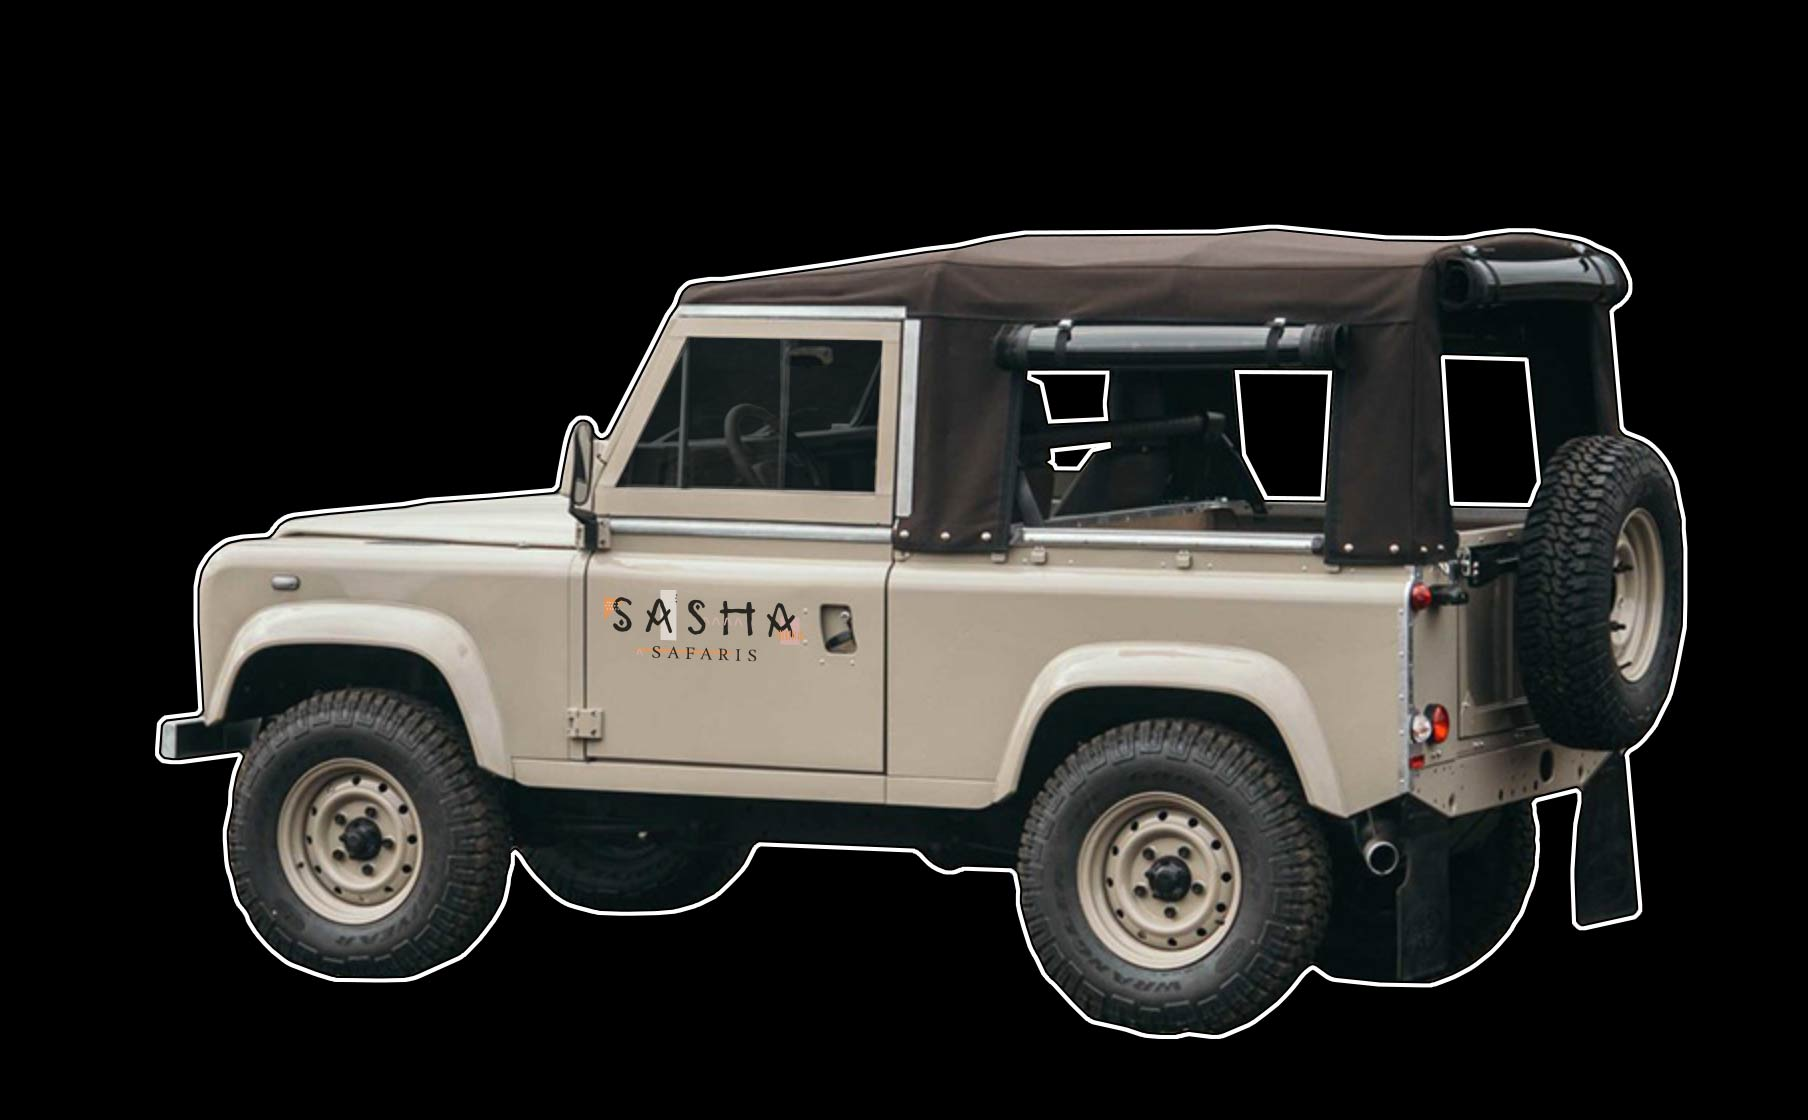 Sasha Safaris Jeep portfolio graphic